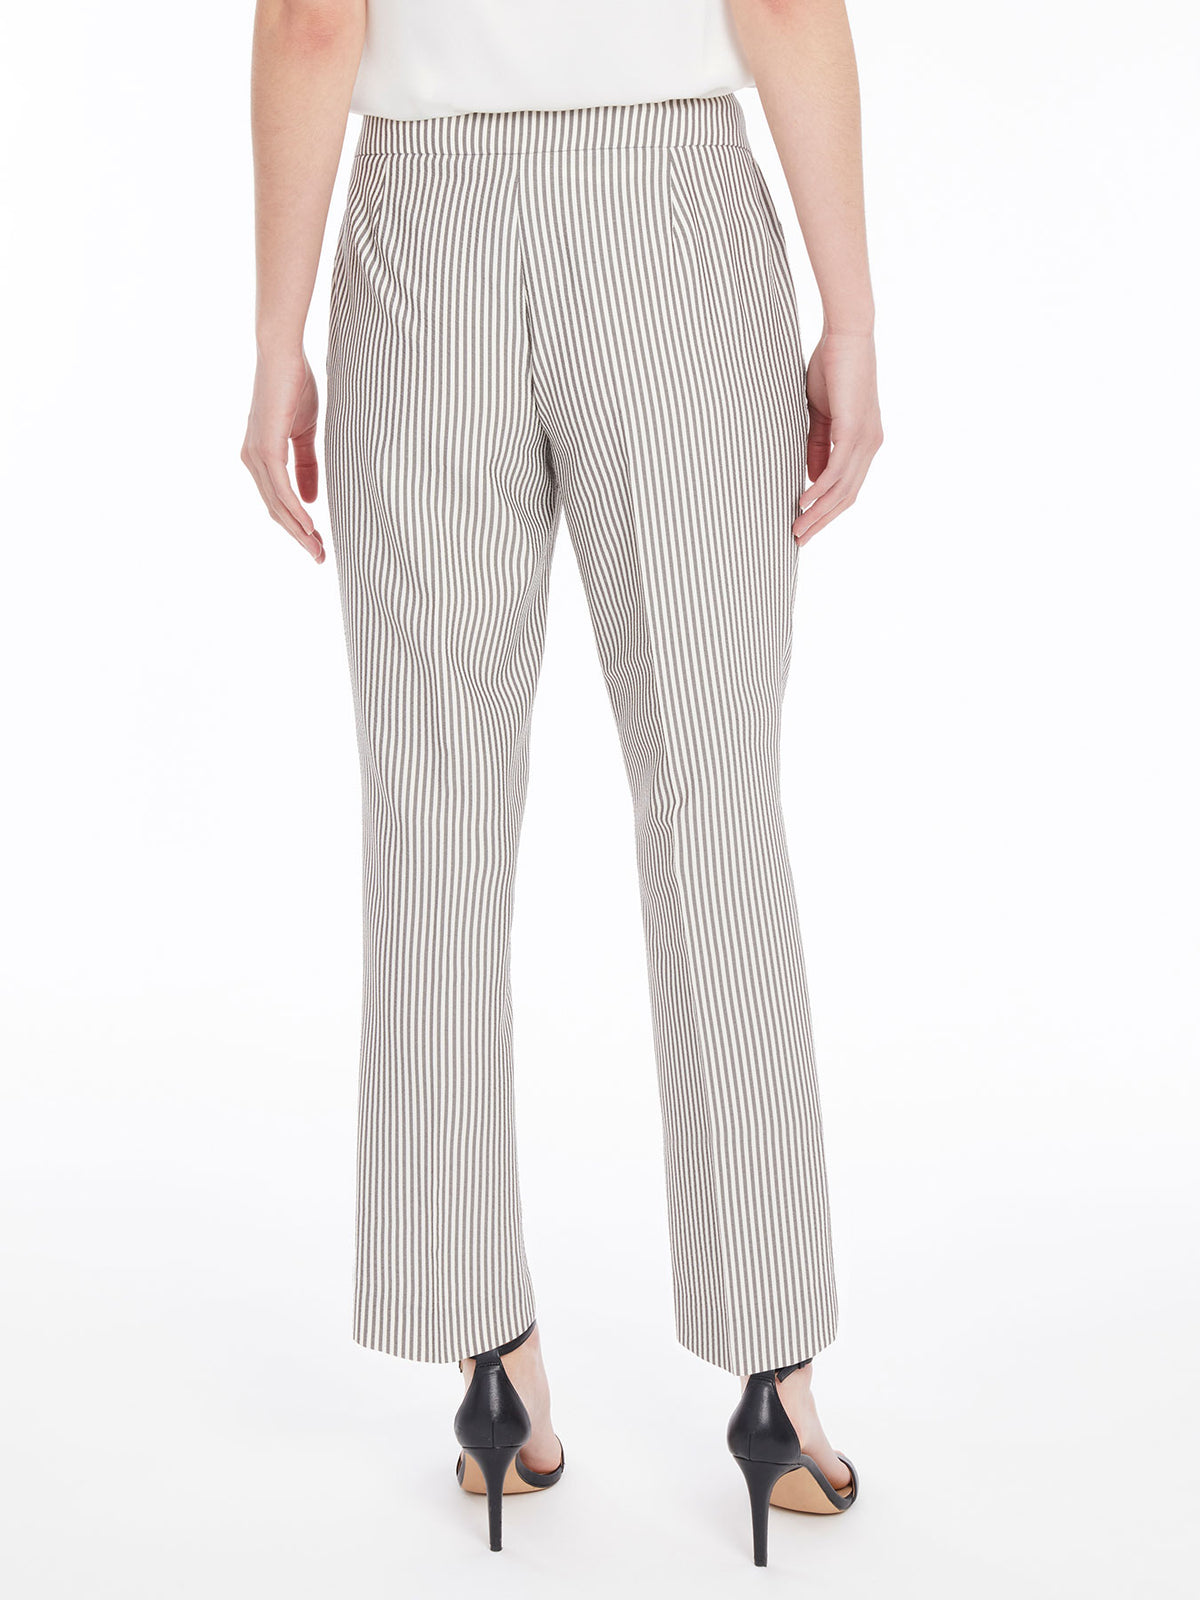 Seersucker Stripe Slim Leg Pant – Grey/White – Kasper